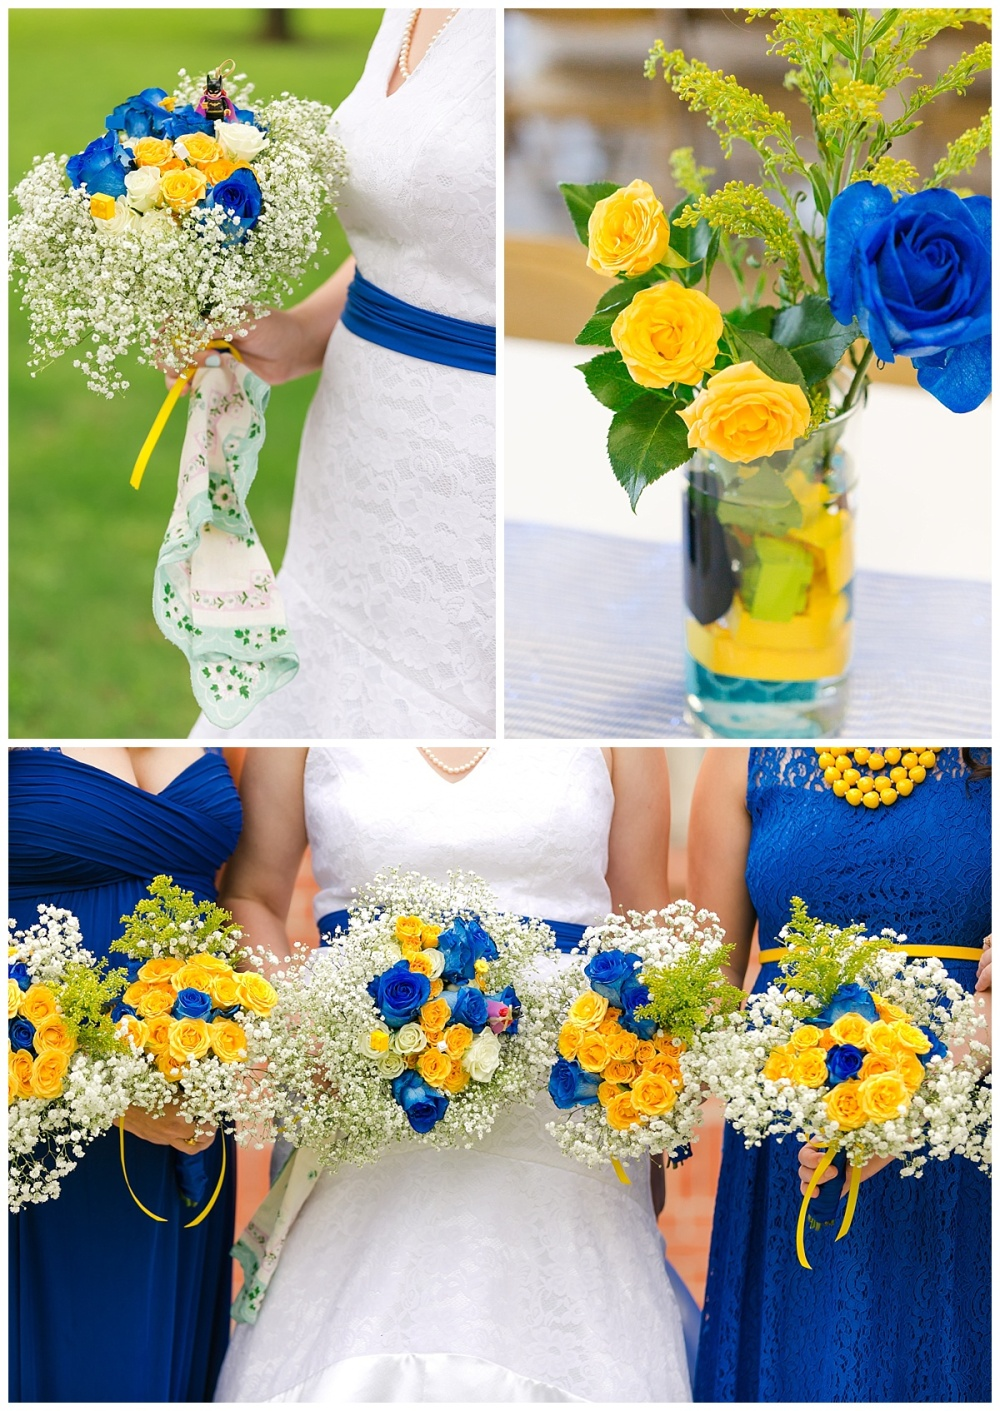 Texas-Wedding-Photographer-La-Coste-Our-Lady-Of-Grace-Church-Bride-Groom-Lego-Theme-Carly-Barton-Photography_0004.jpg